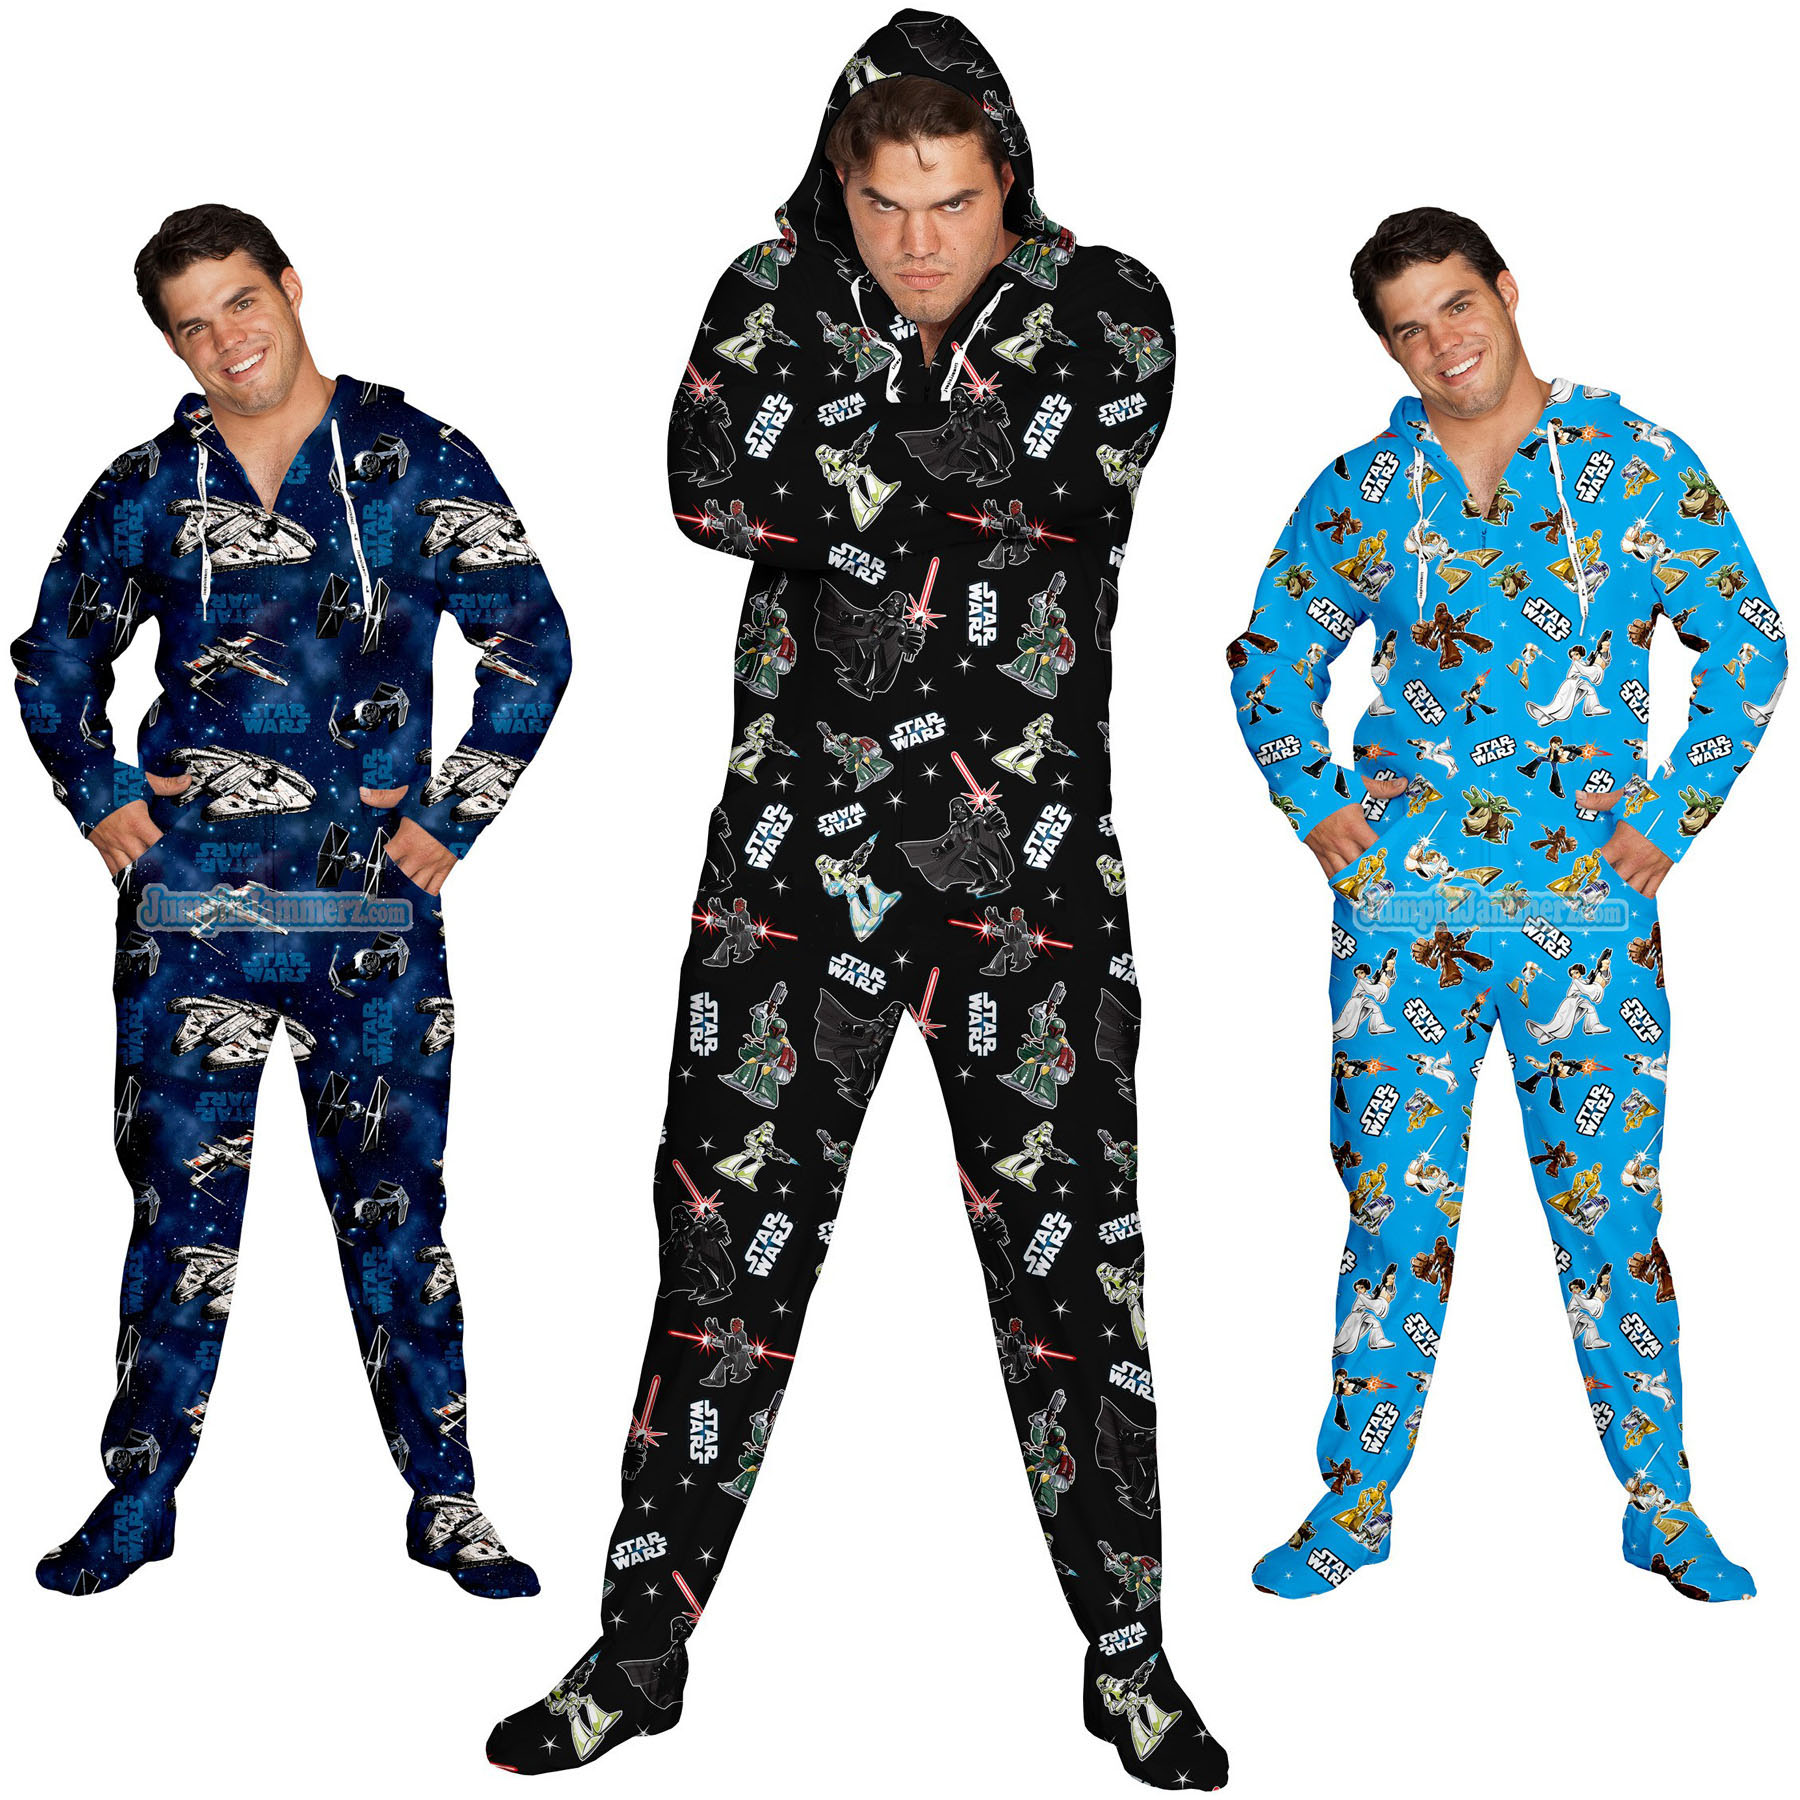 Star Wars Footed Pajamas